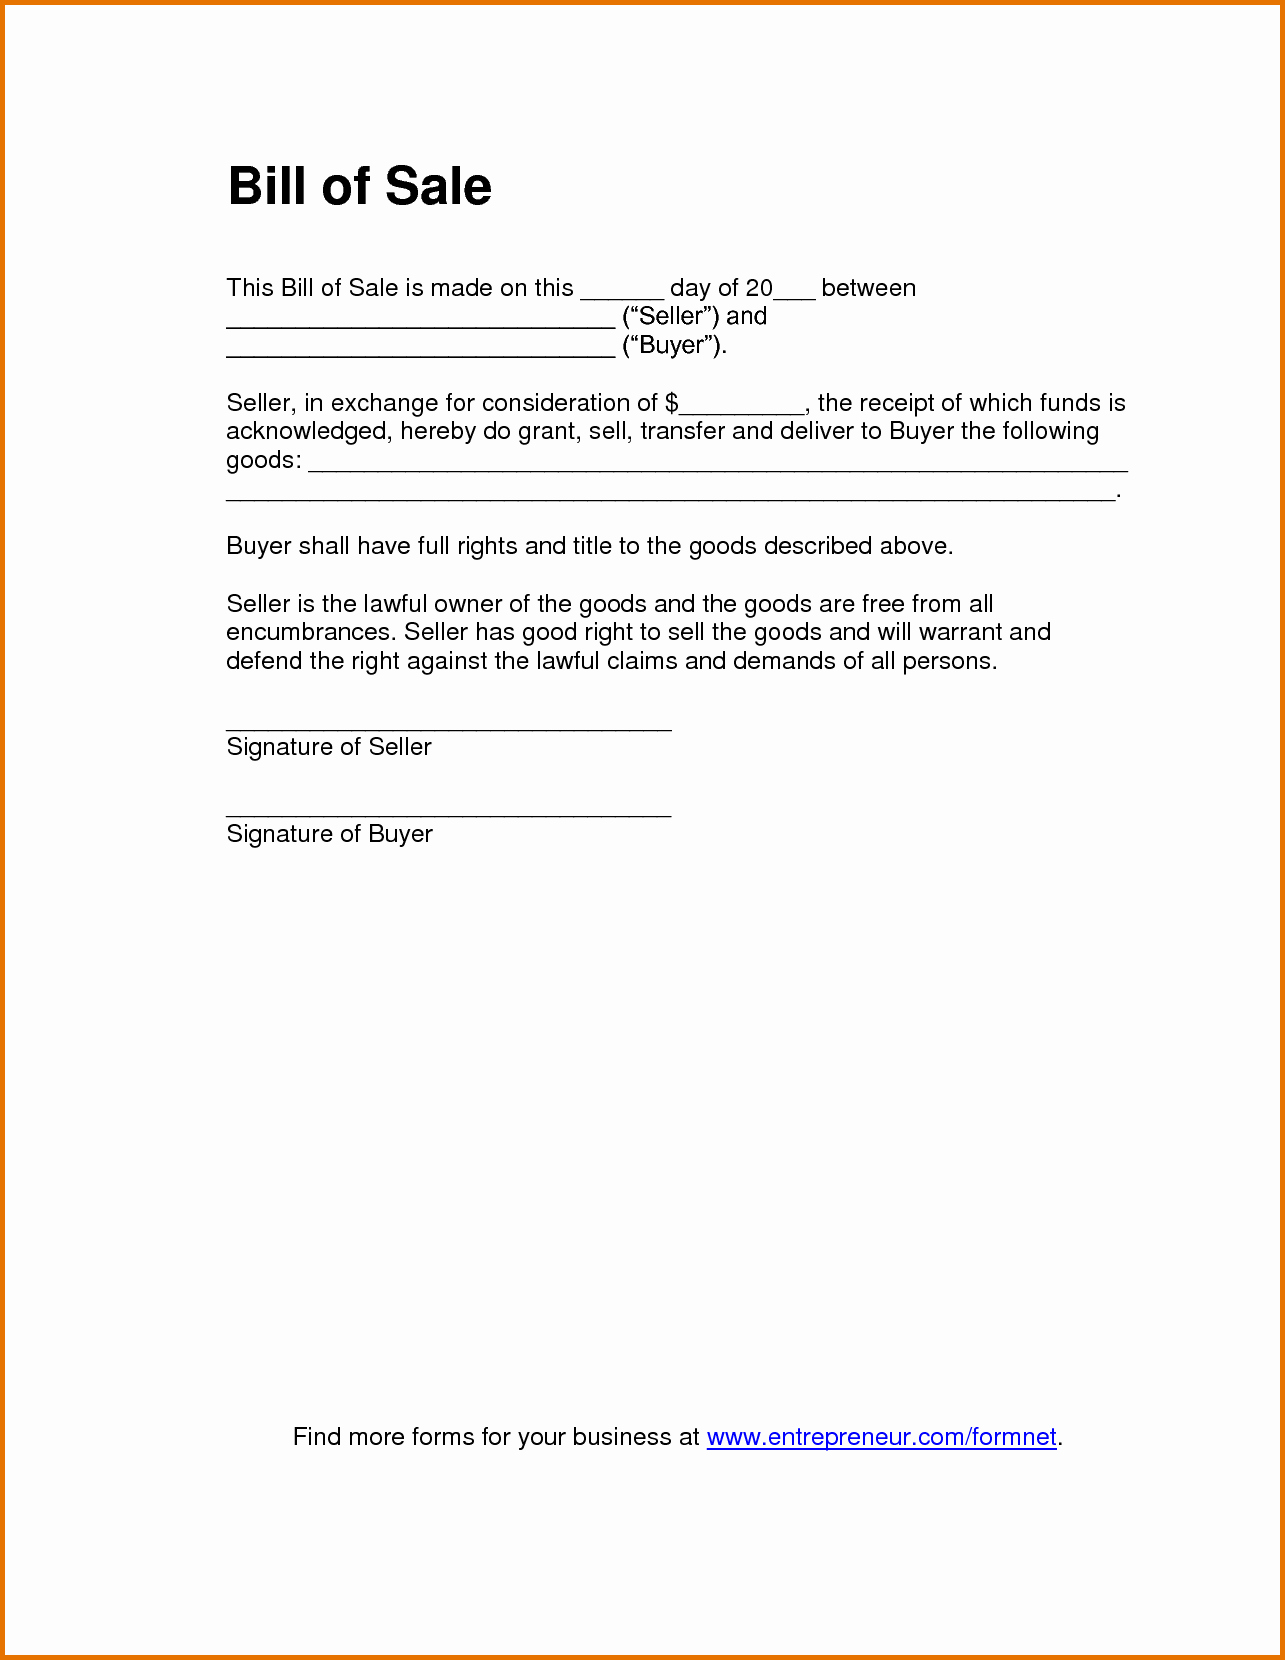 Basic Automobile Bill Of Sale Beautiful 8 Bill Of Sale Template Pdfreference Letters Words